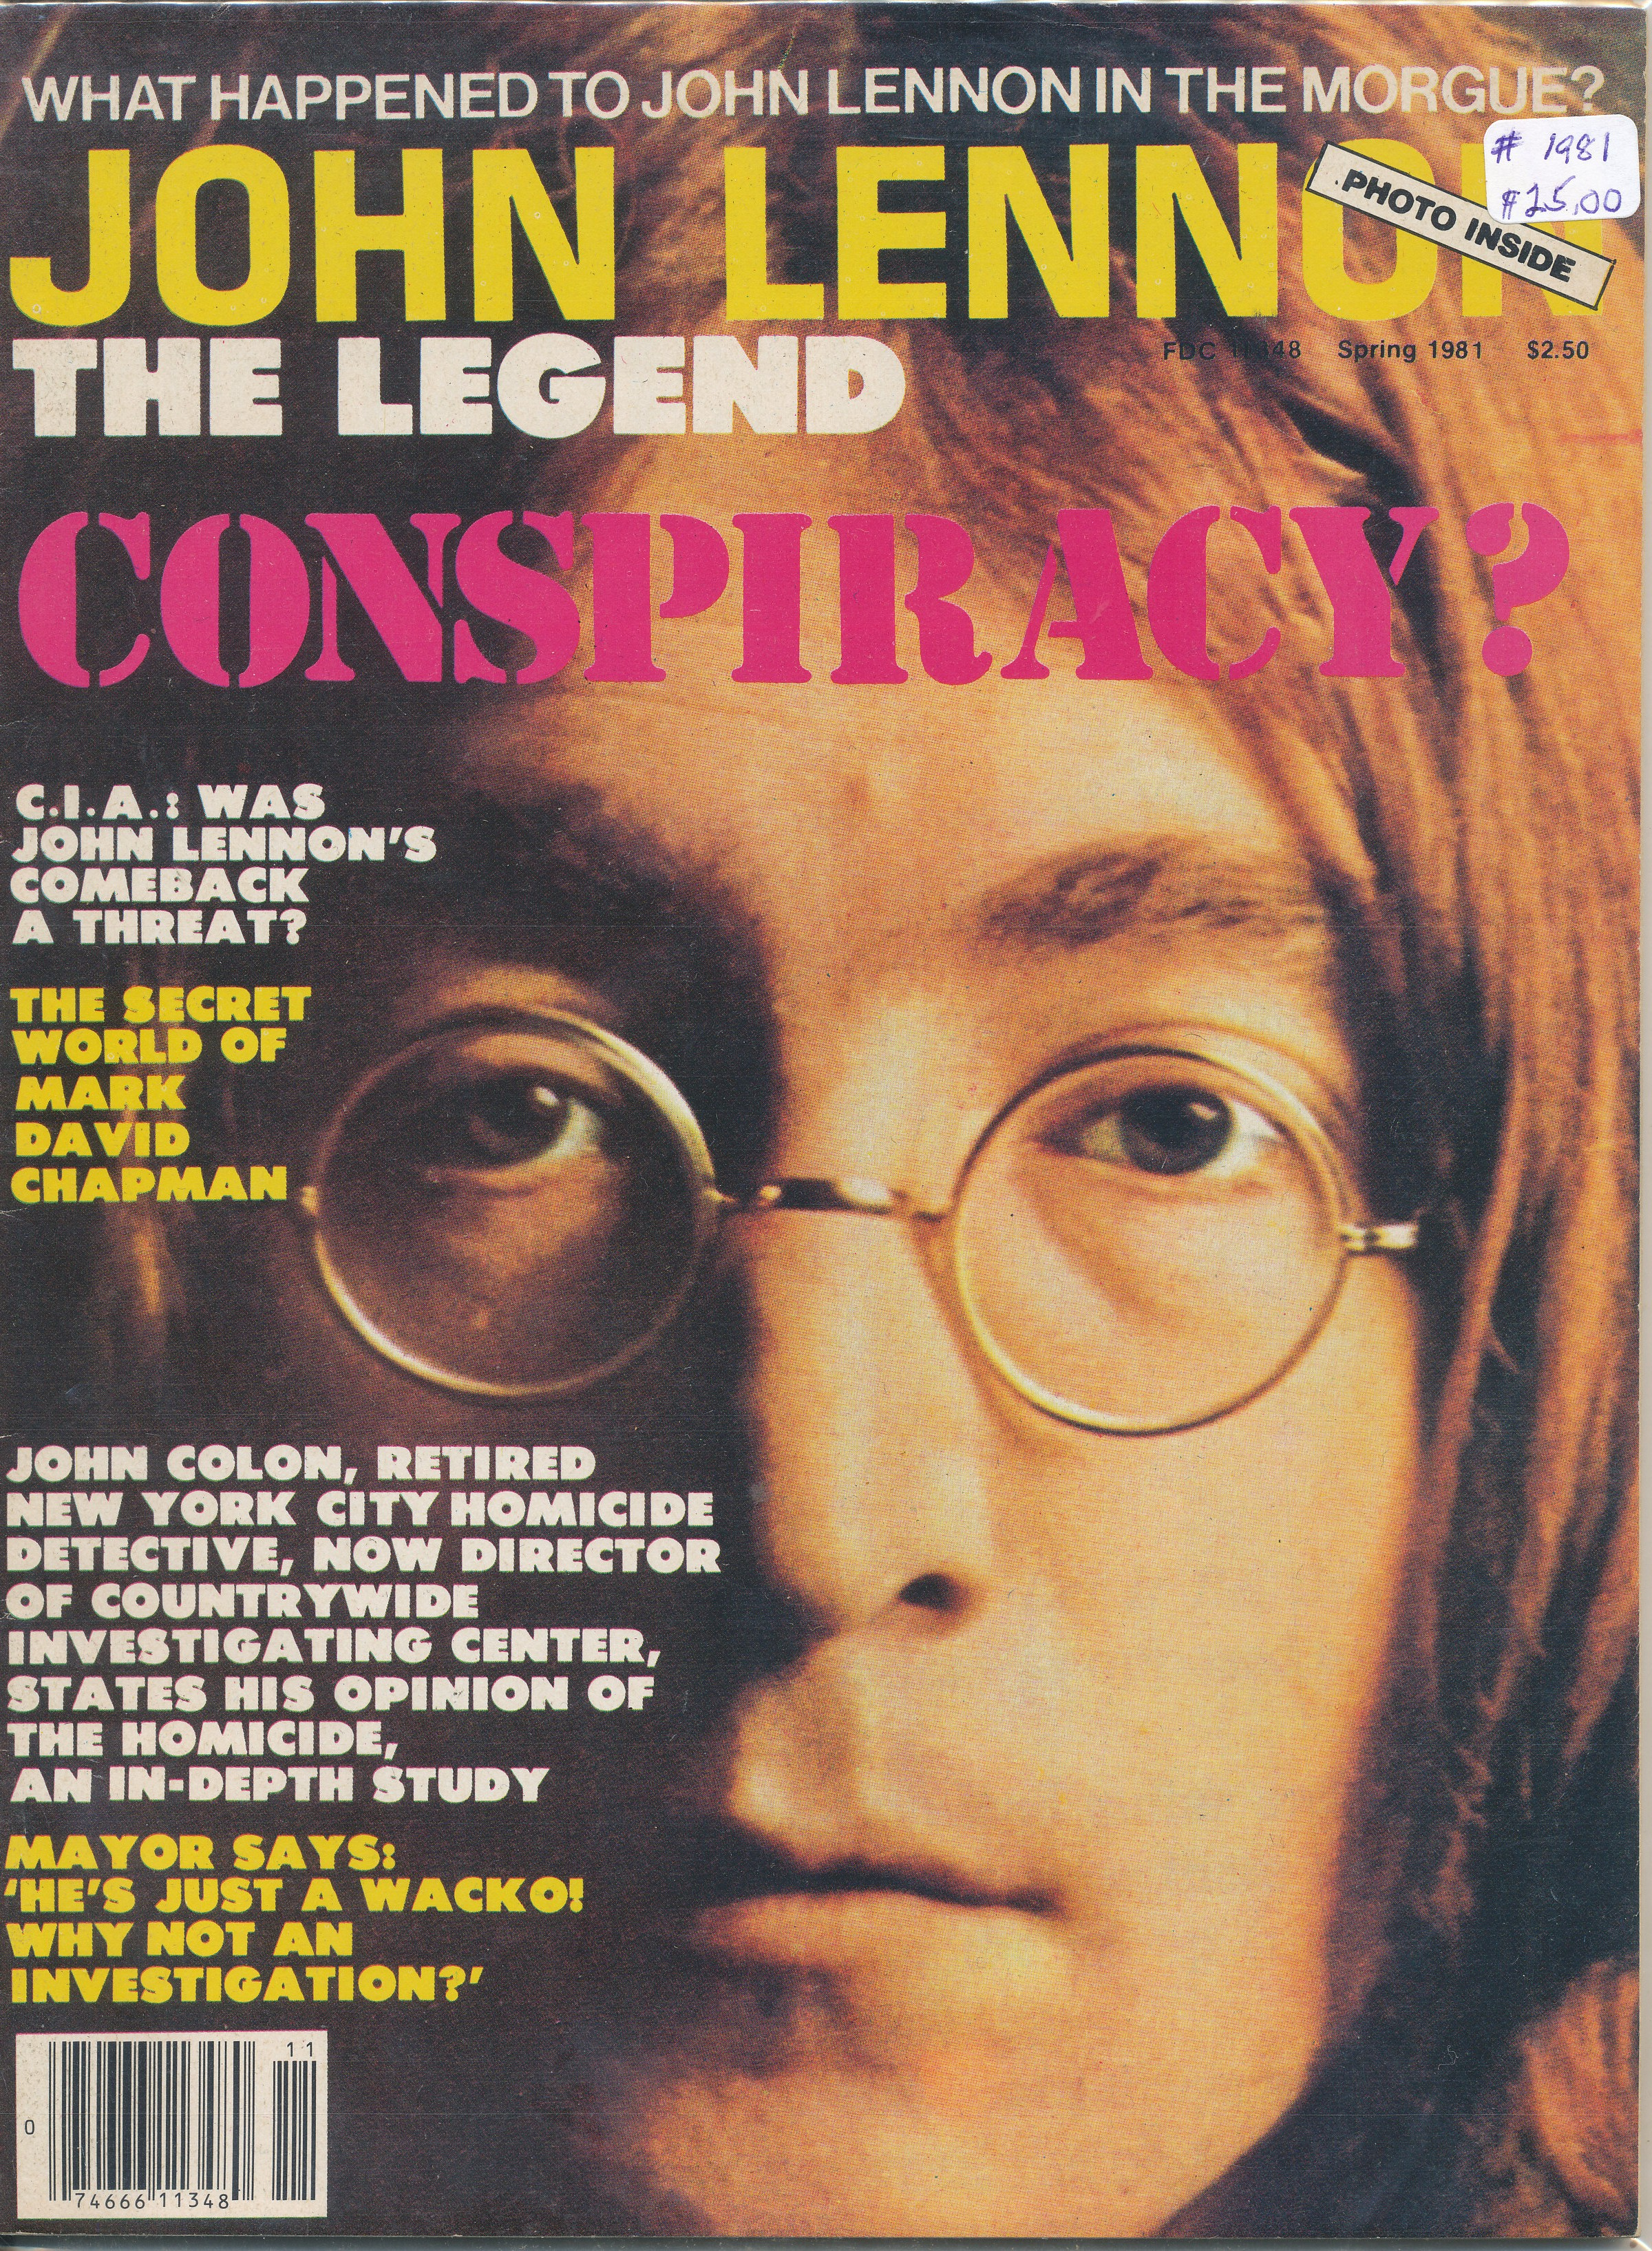 1981 Conspiracy? John Lennon The Legend